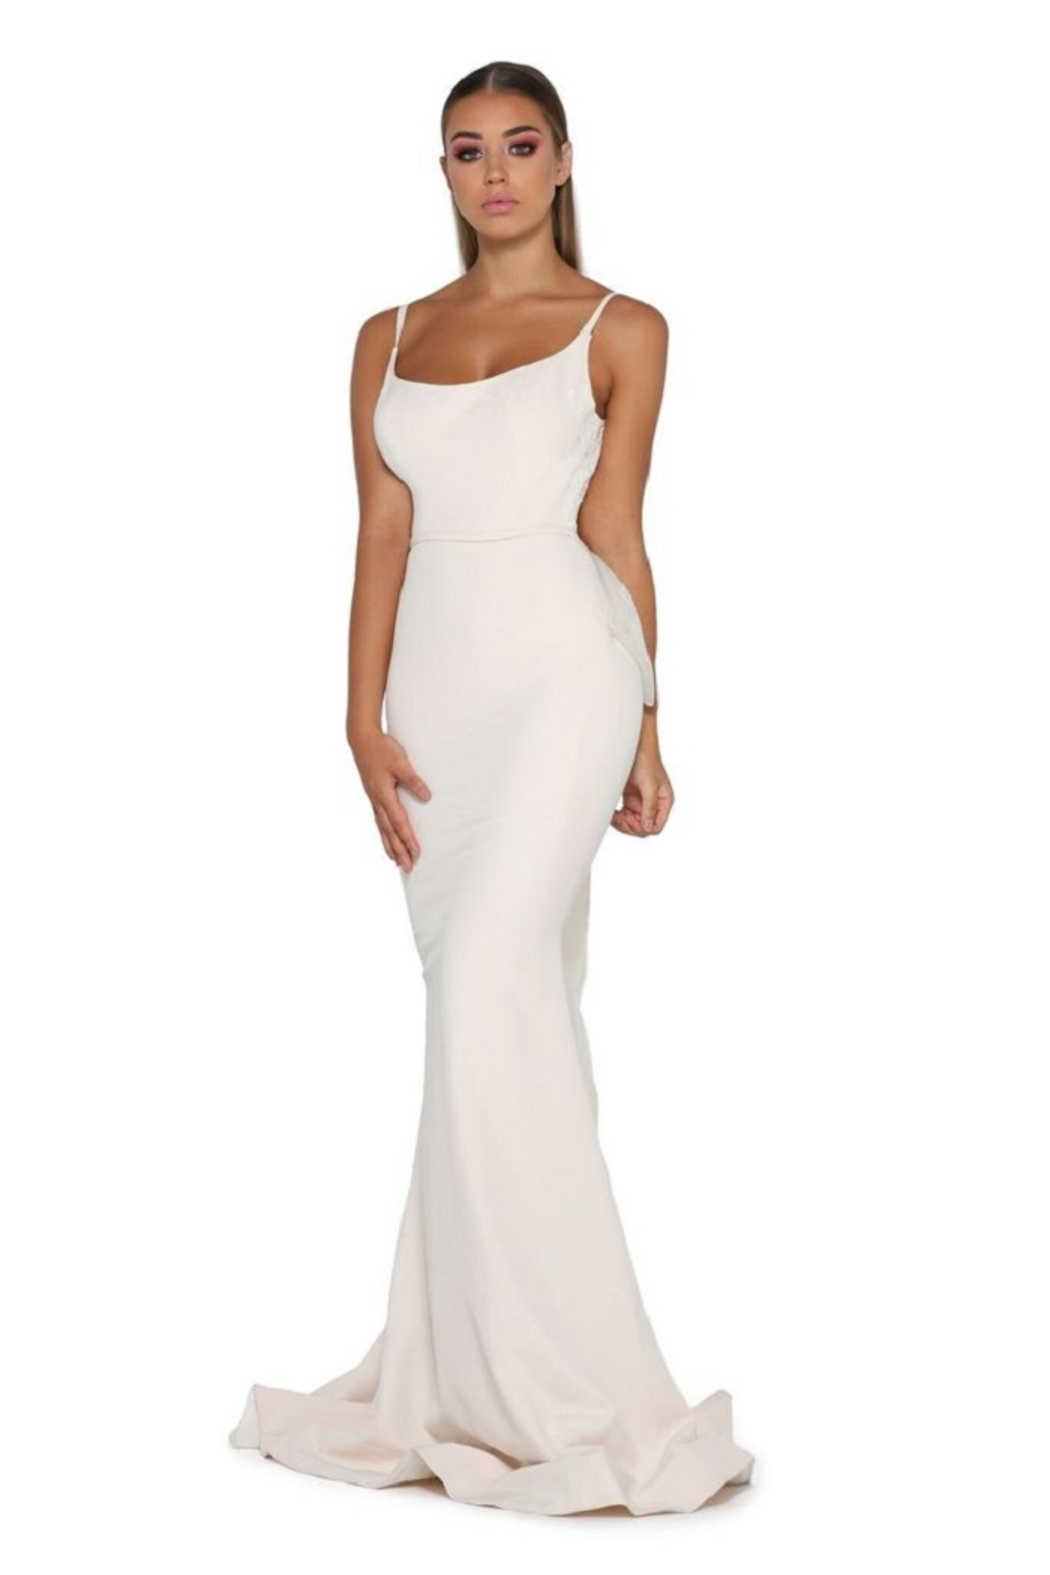 PORTIA AND SCARLETT Cream Fit & Flare Bridal Gown With Detachable Bow - Main Image